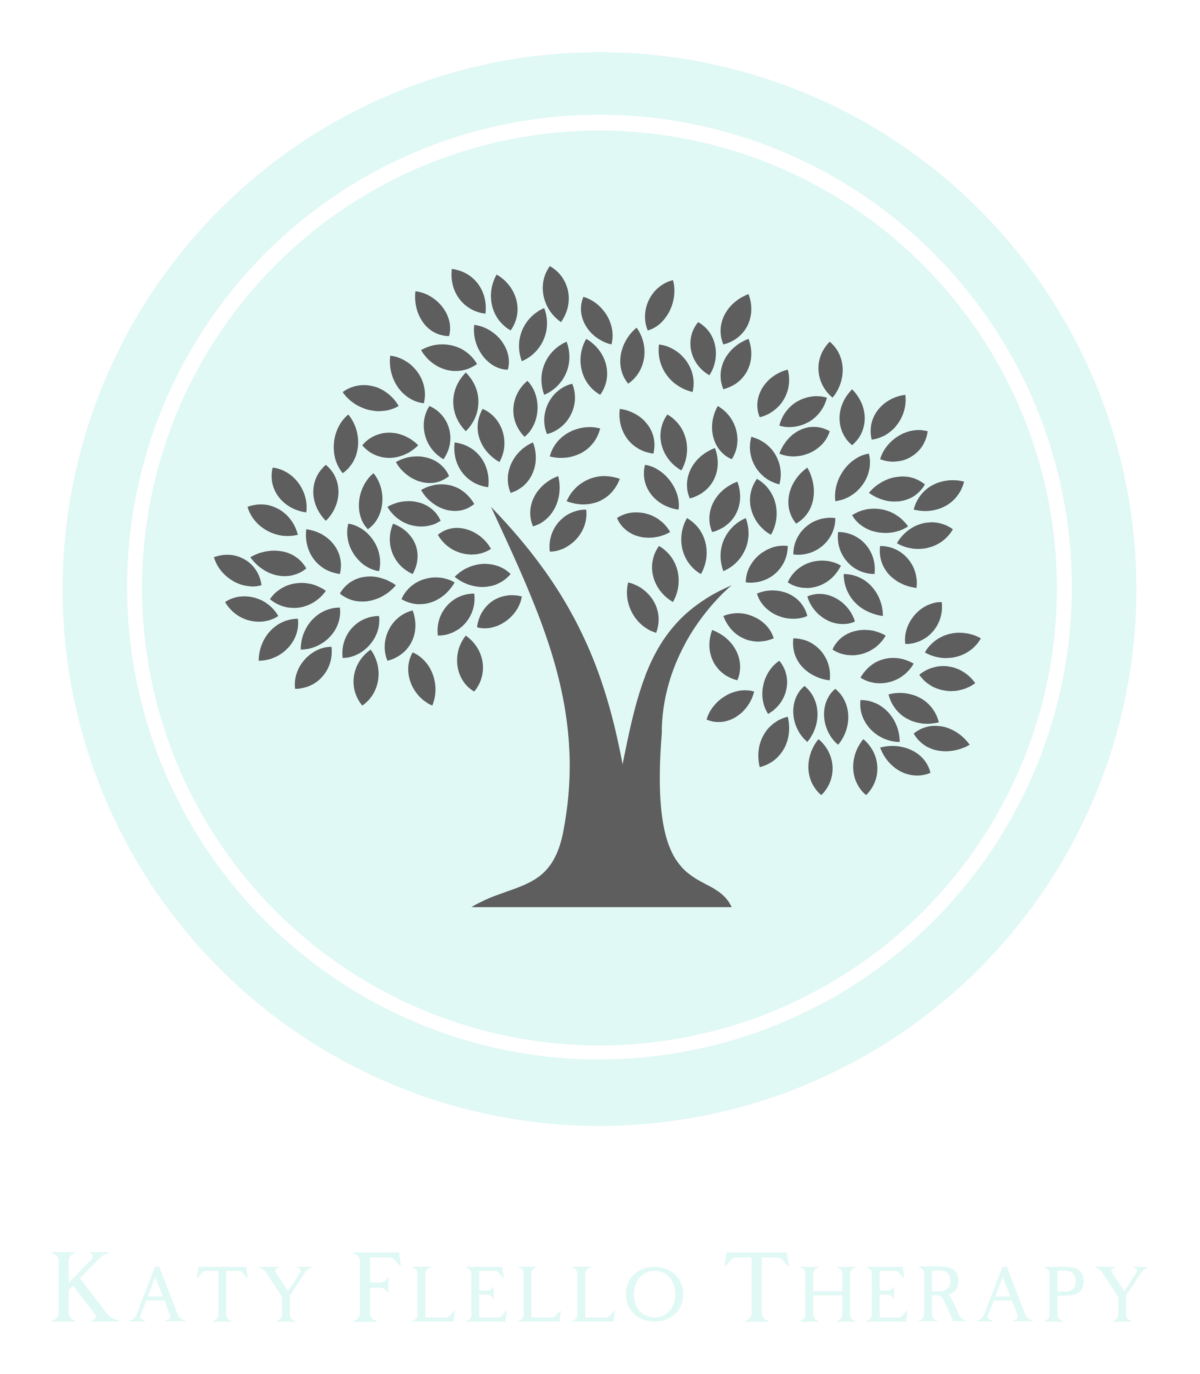 Katy Flello Therapy